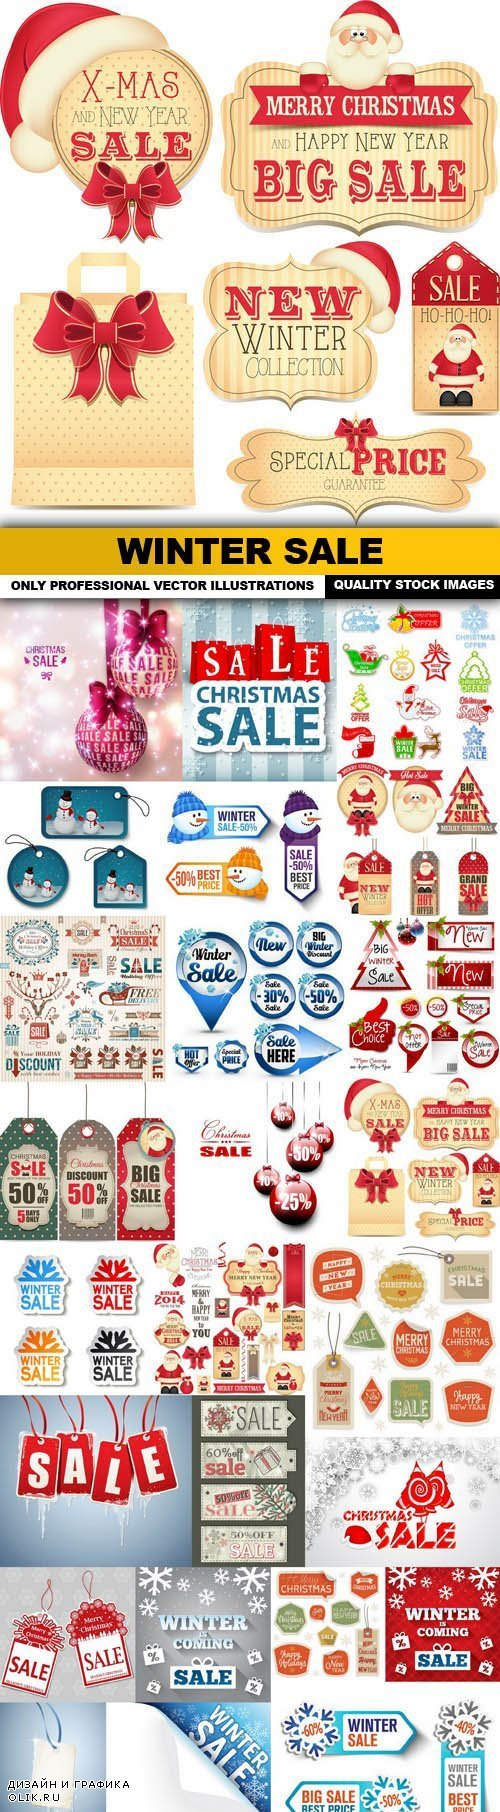 Winter Sale - 25 Vector